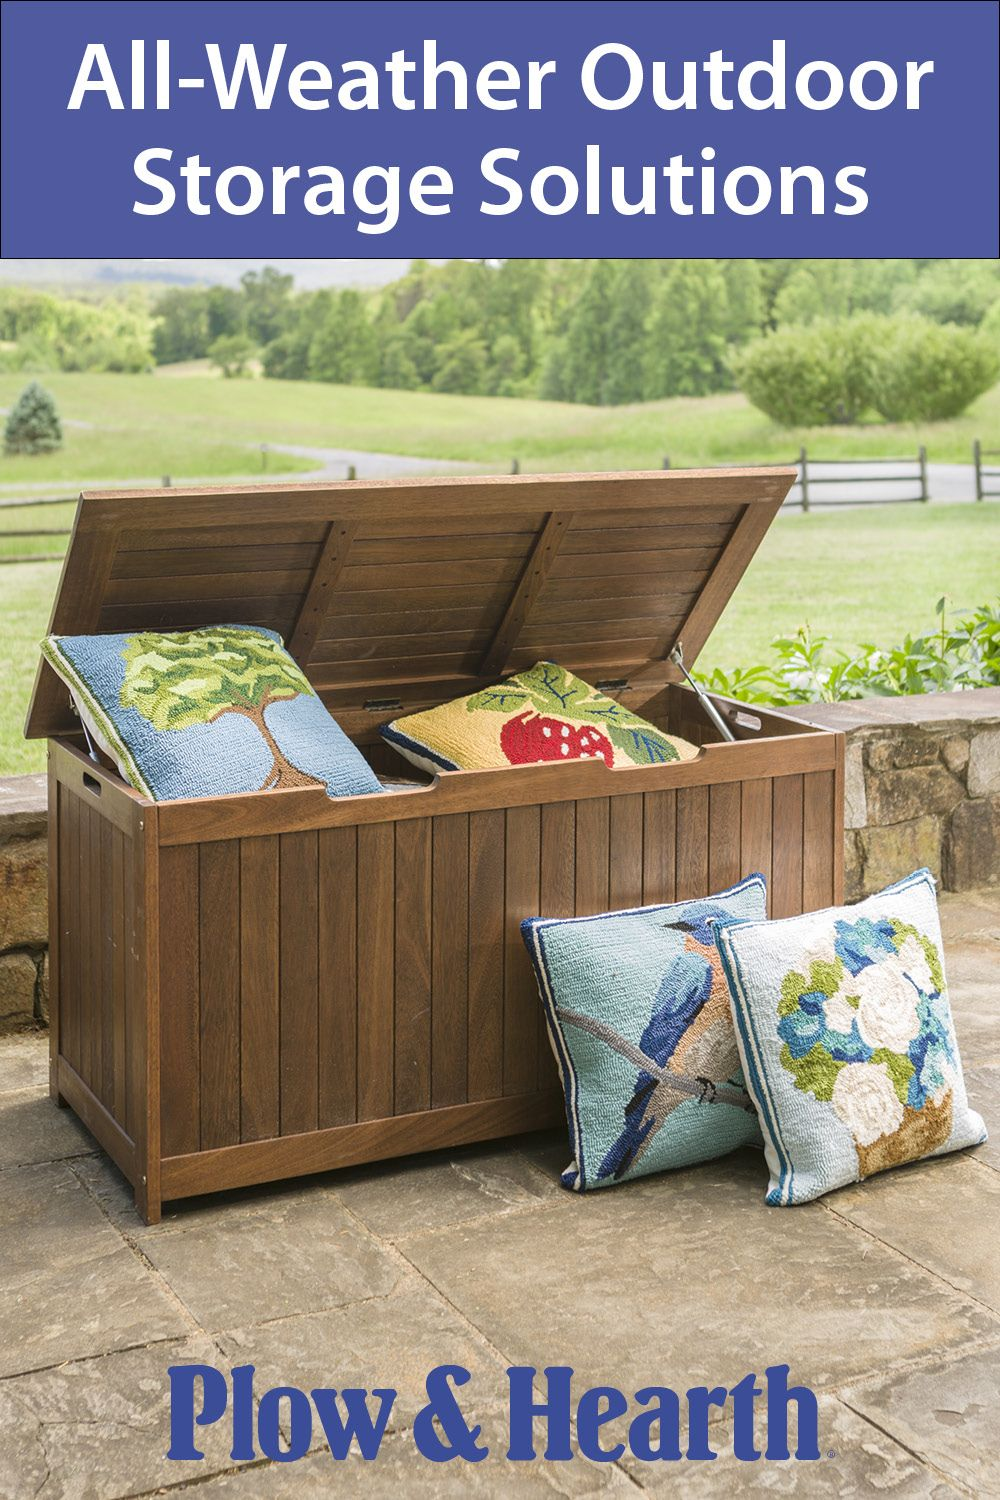 A Place For Everything And Everything In Its Place Outdoor Storage Solutions Wood Patio Furniture Outdoor Wood Furniture